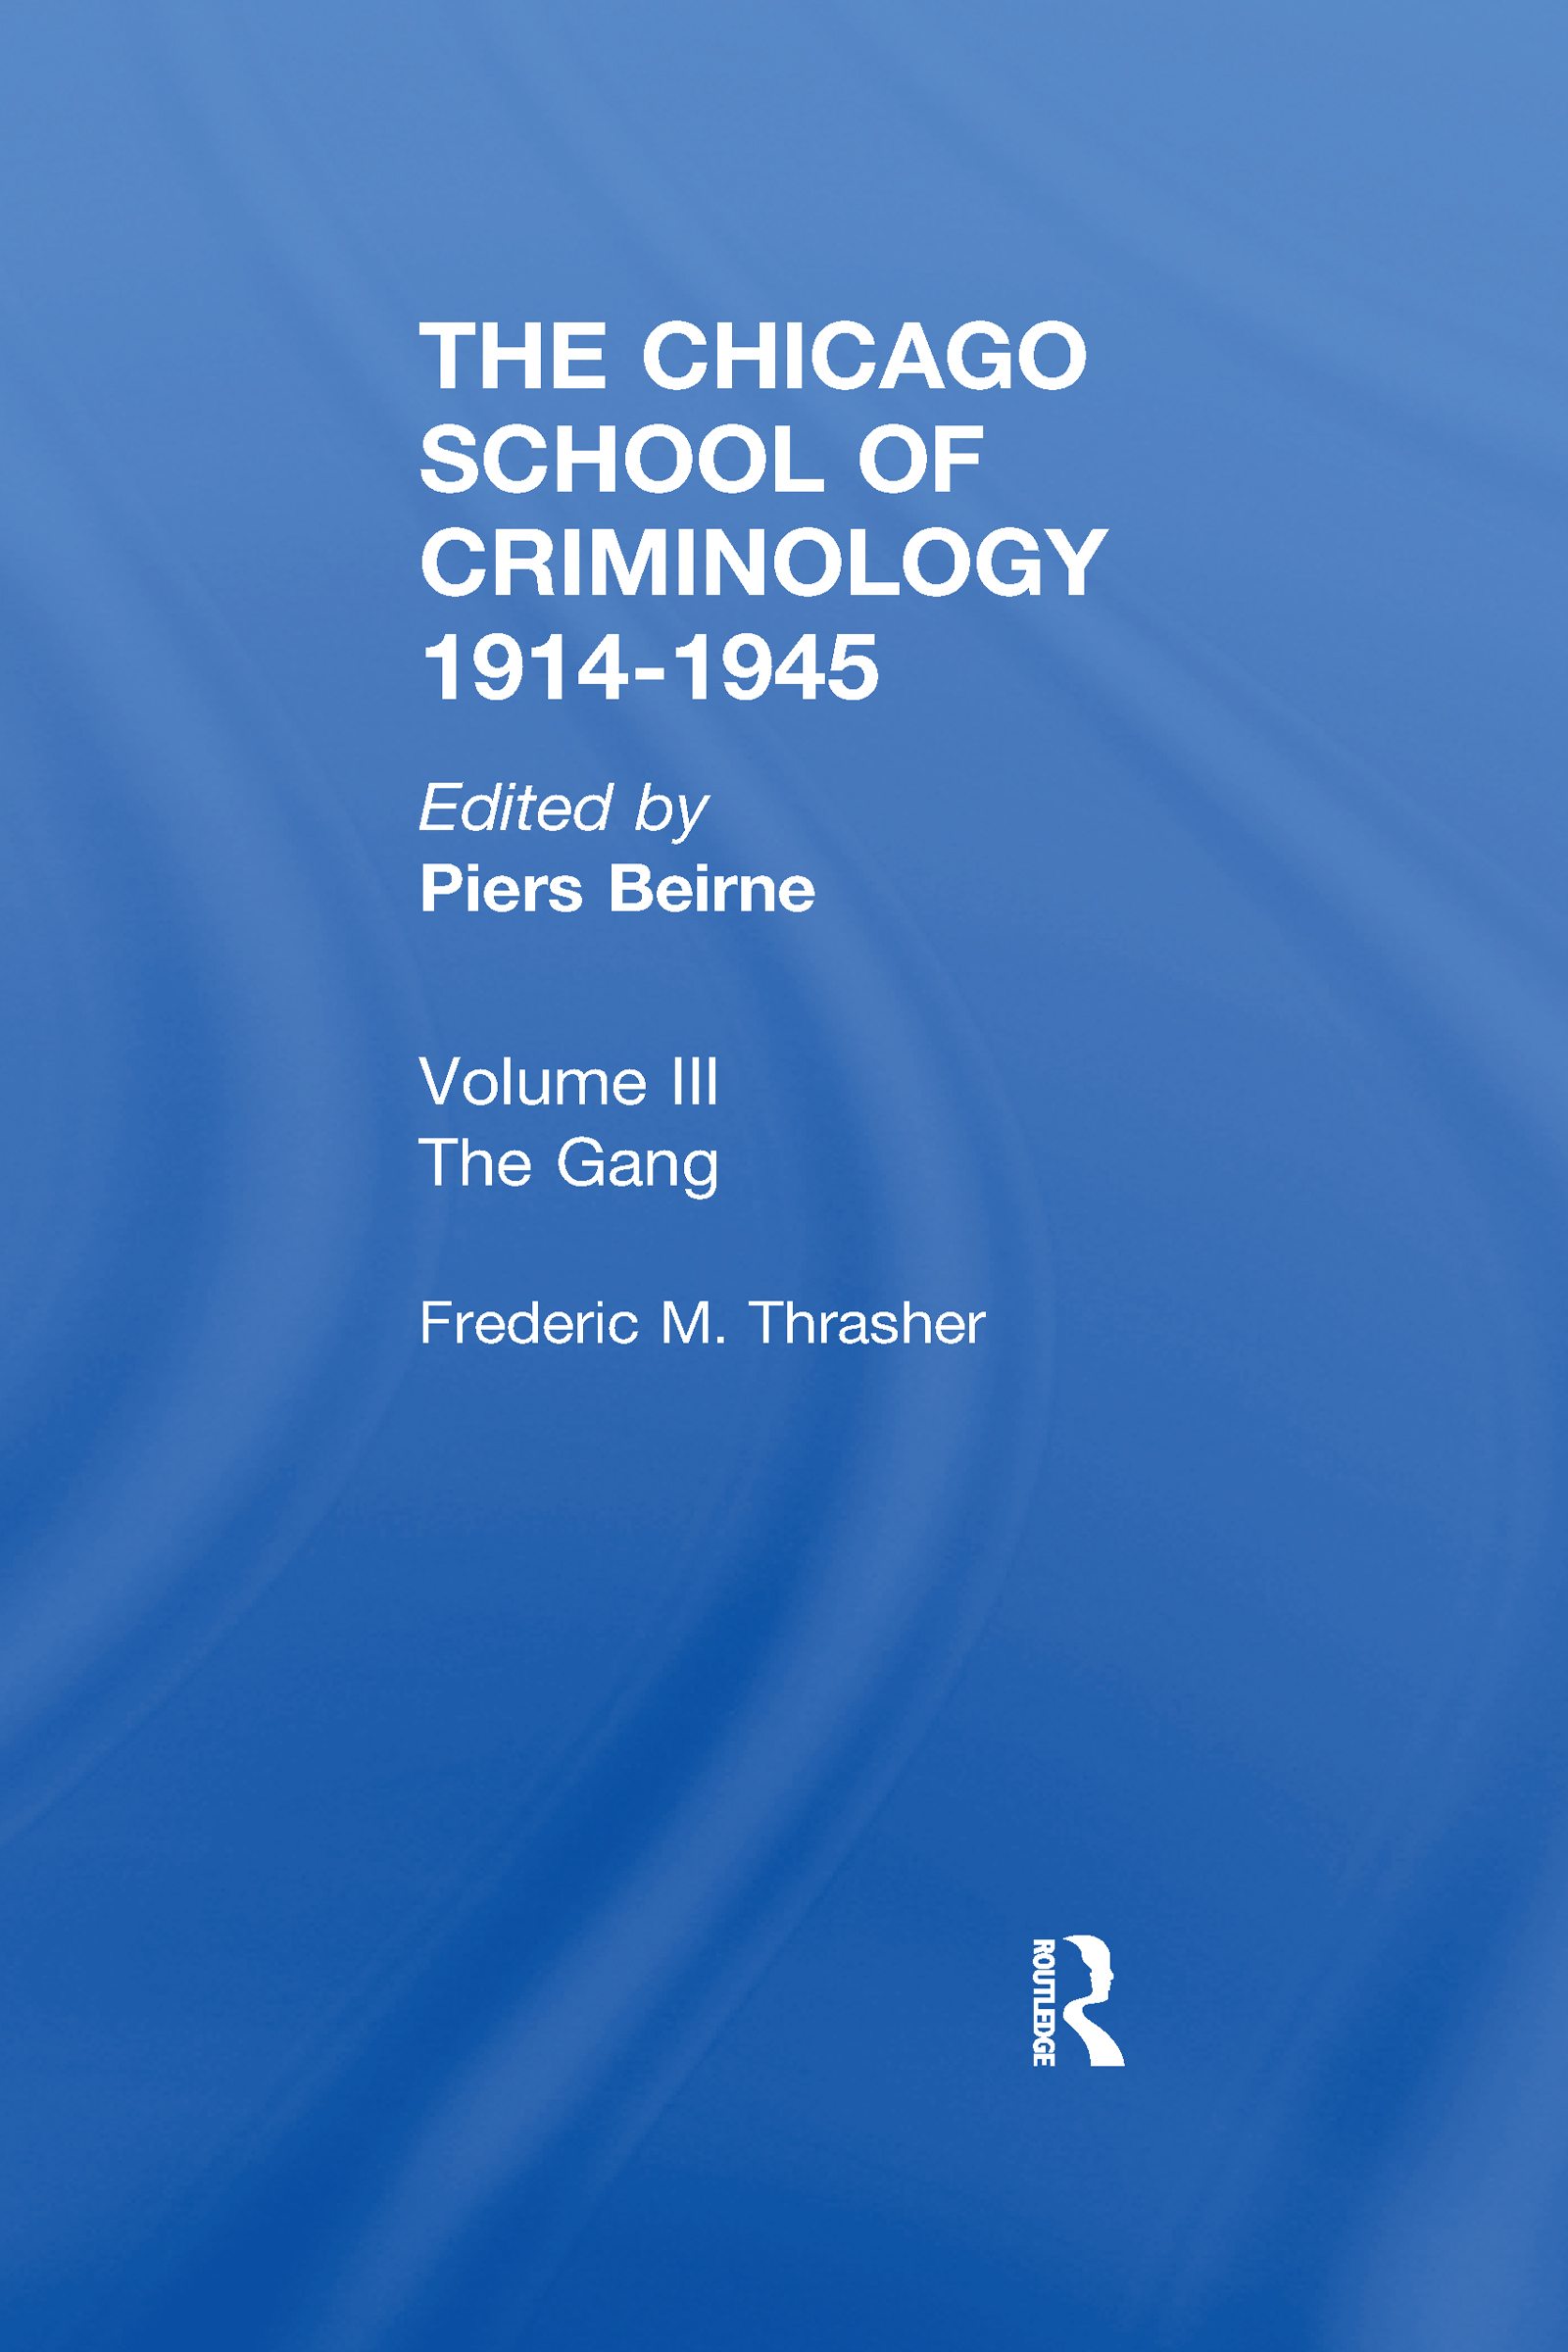 CHICAGO SCHOOL CRIMINOLOGY Volume 3: The Gang: A Study of 1,313 Gangs in Chicago by Frederic Milton Thrasher book cover